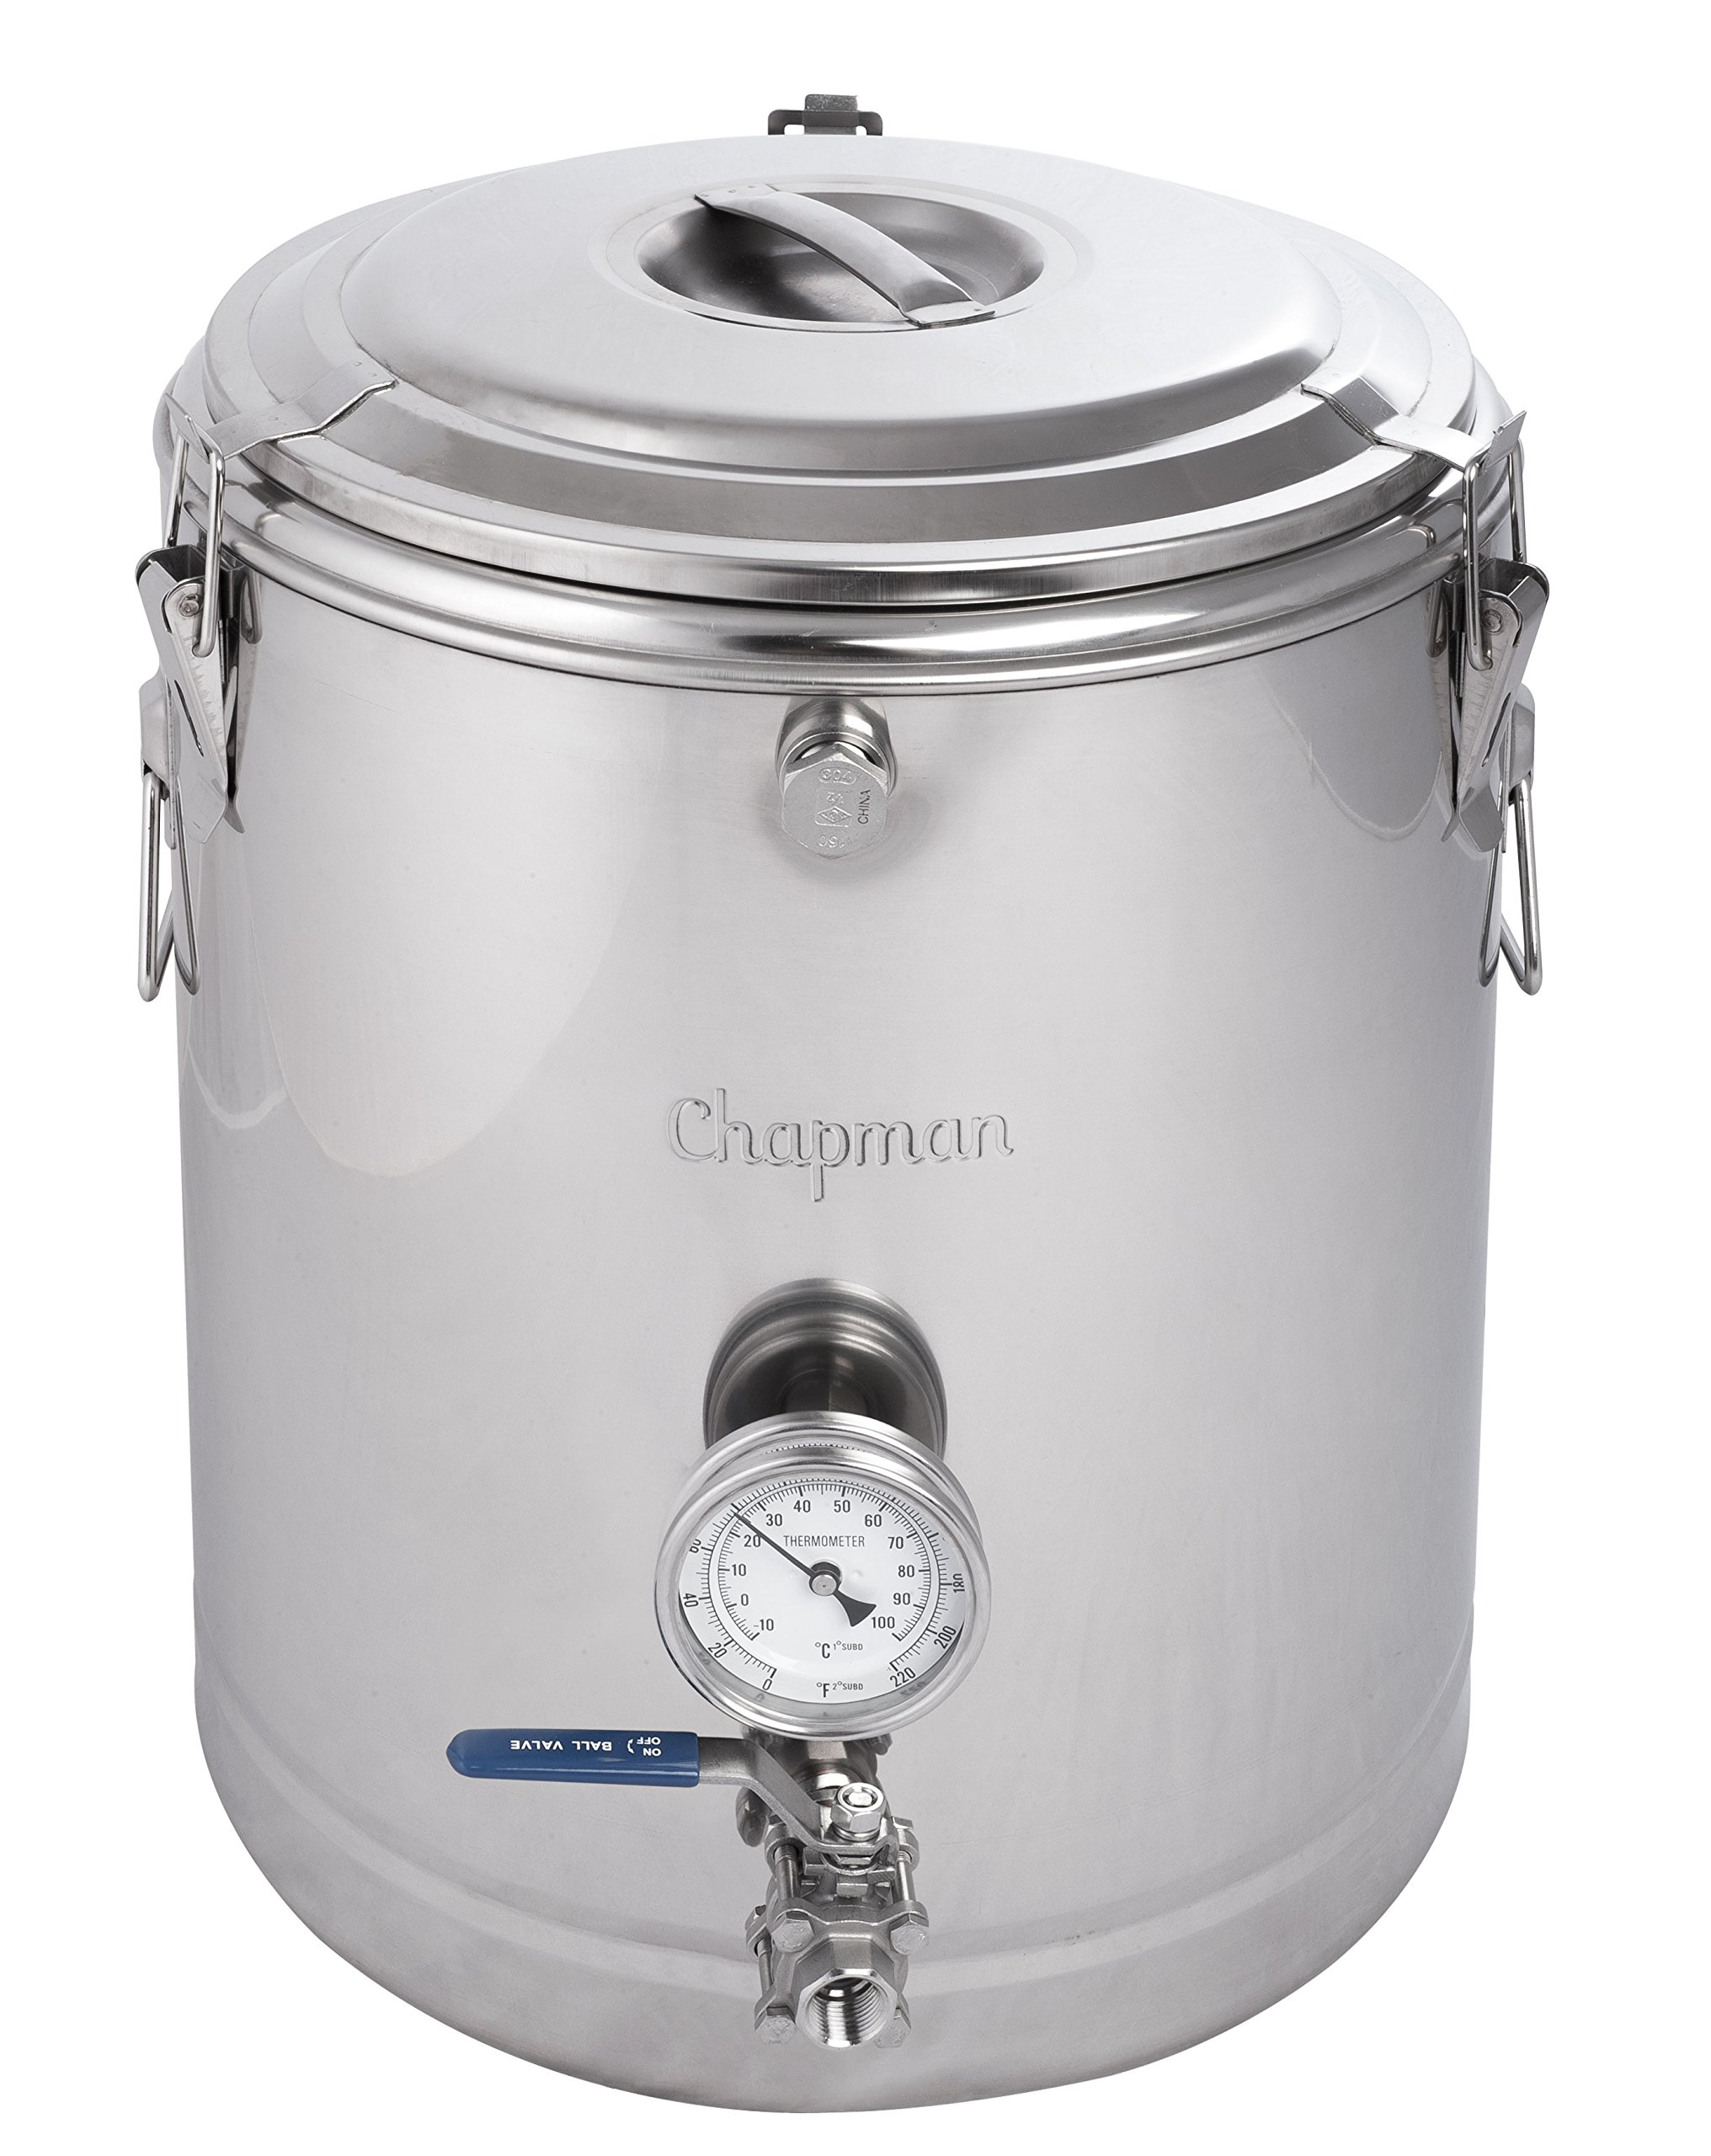 Chapman 15 Gallon ThermoBarrel Stainless Steel Mash Tun by Chapman Brewing Equipment